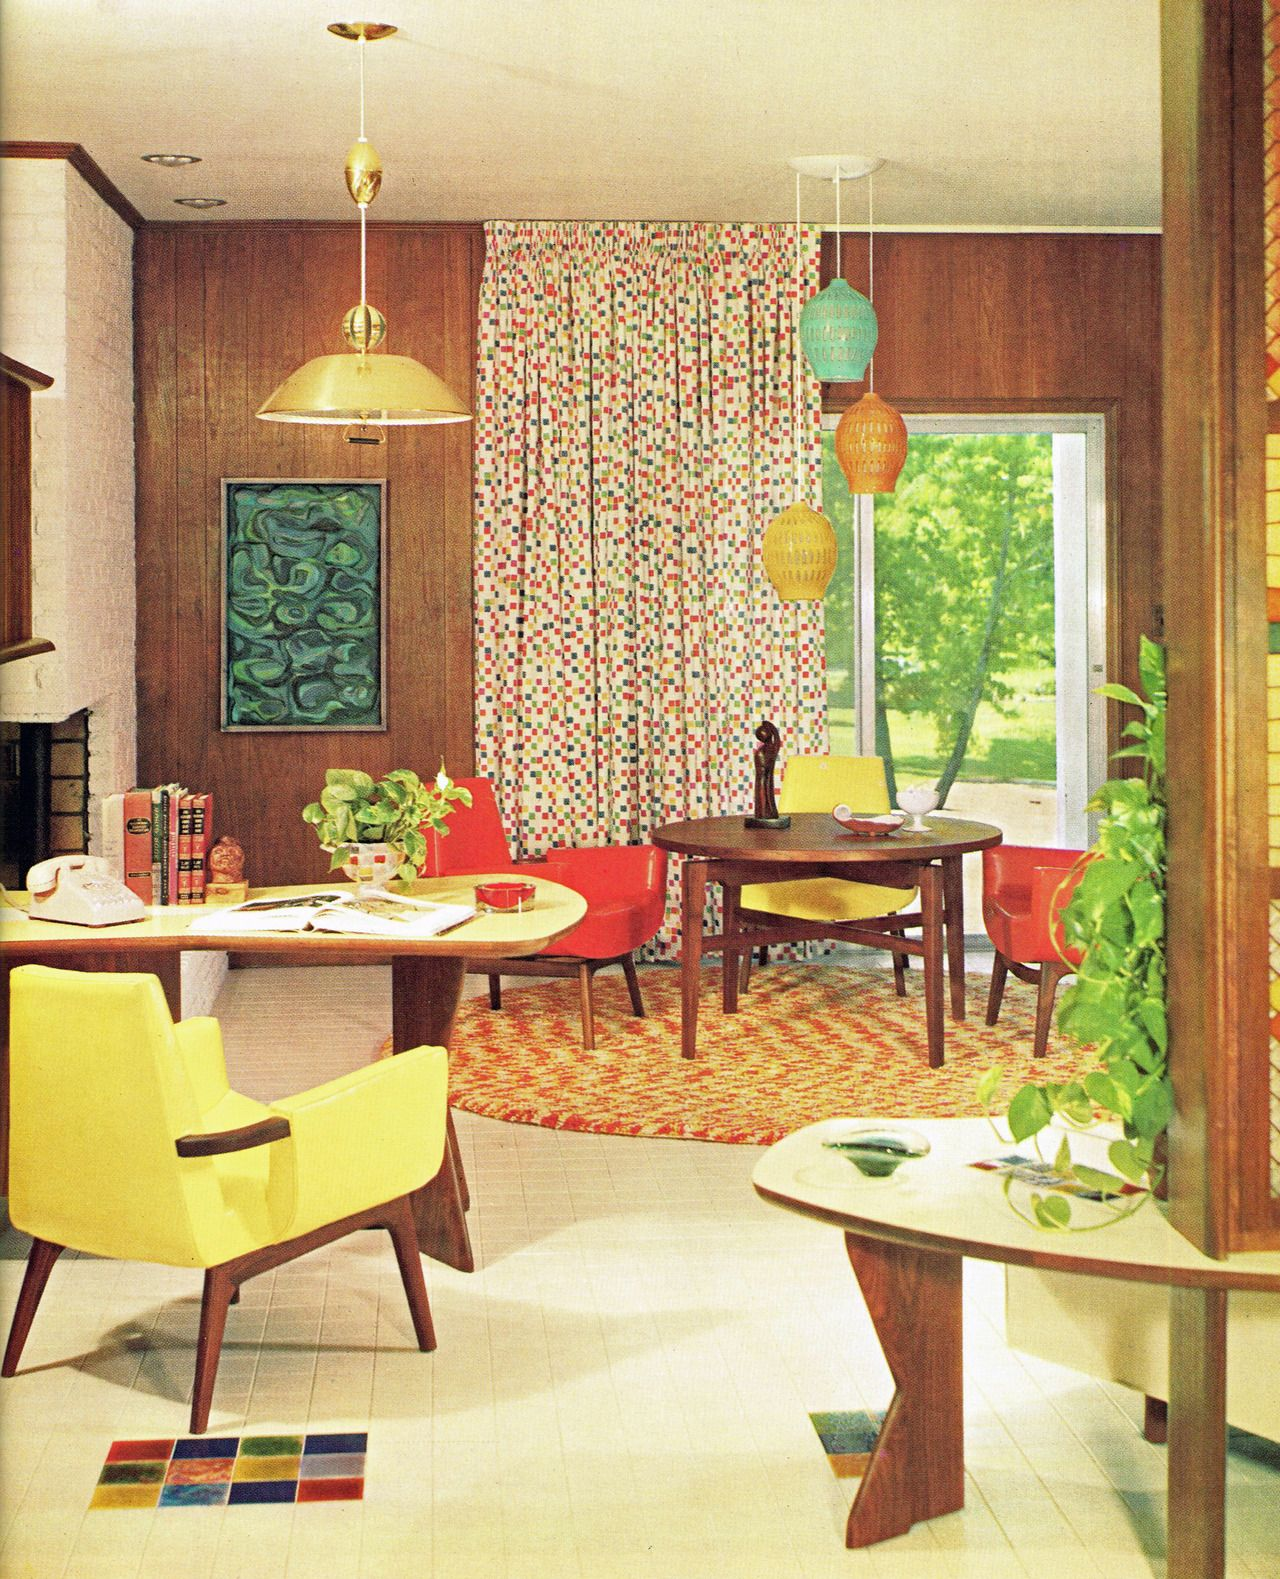 pool 1960's background | astounding 1960 s retro living room